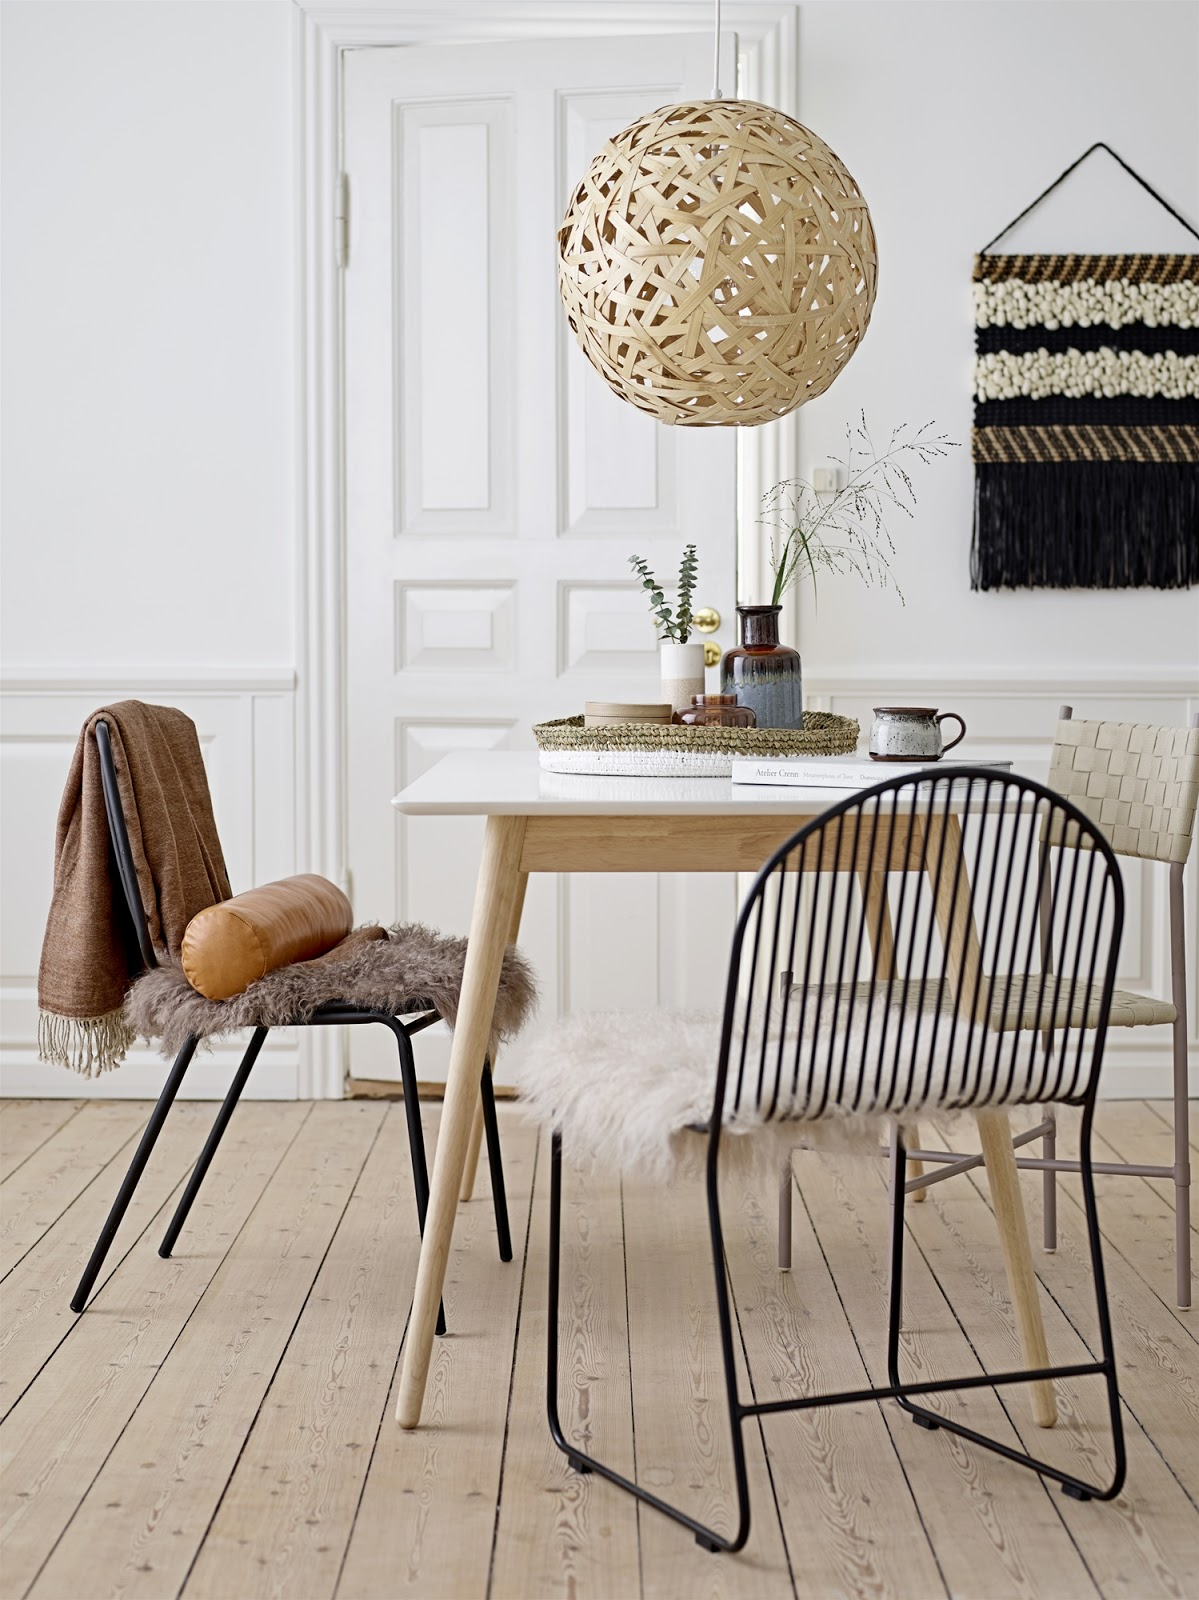 A new creation from Bloomingville the Friend Dining Chair features a fine metal frame with an arch back and a playful shape. & Friend Dining Chair by Bloomingville | CRUZEIRO DO TEJO